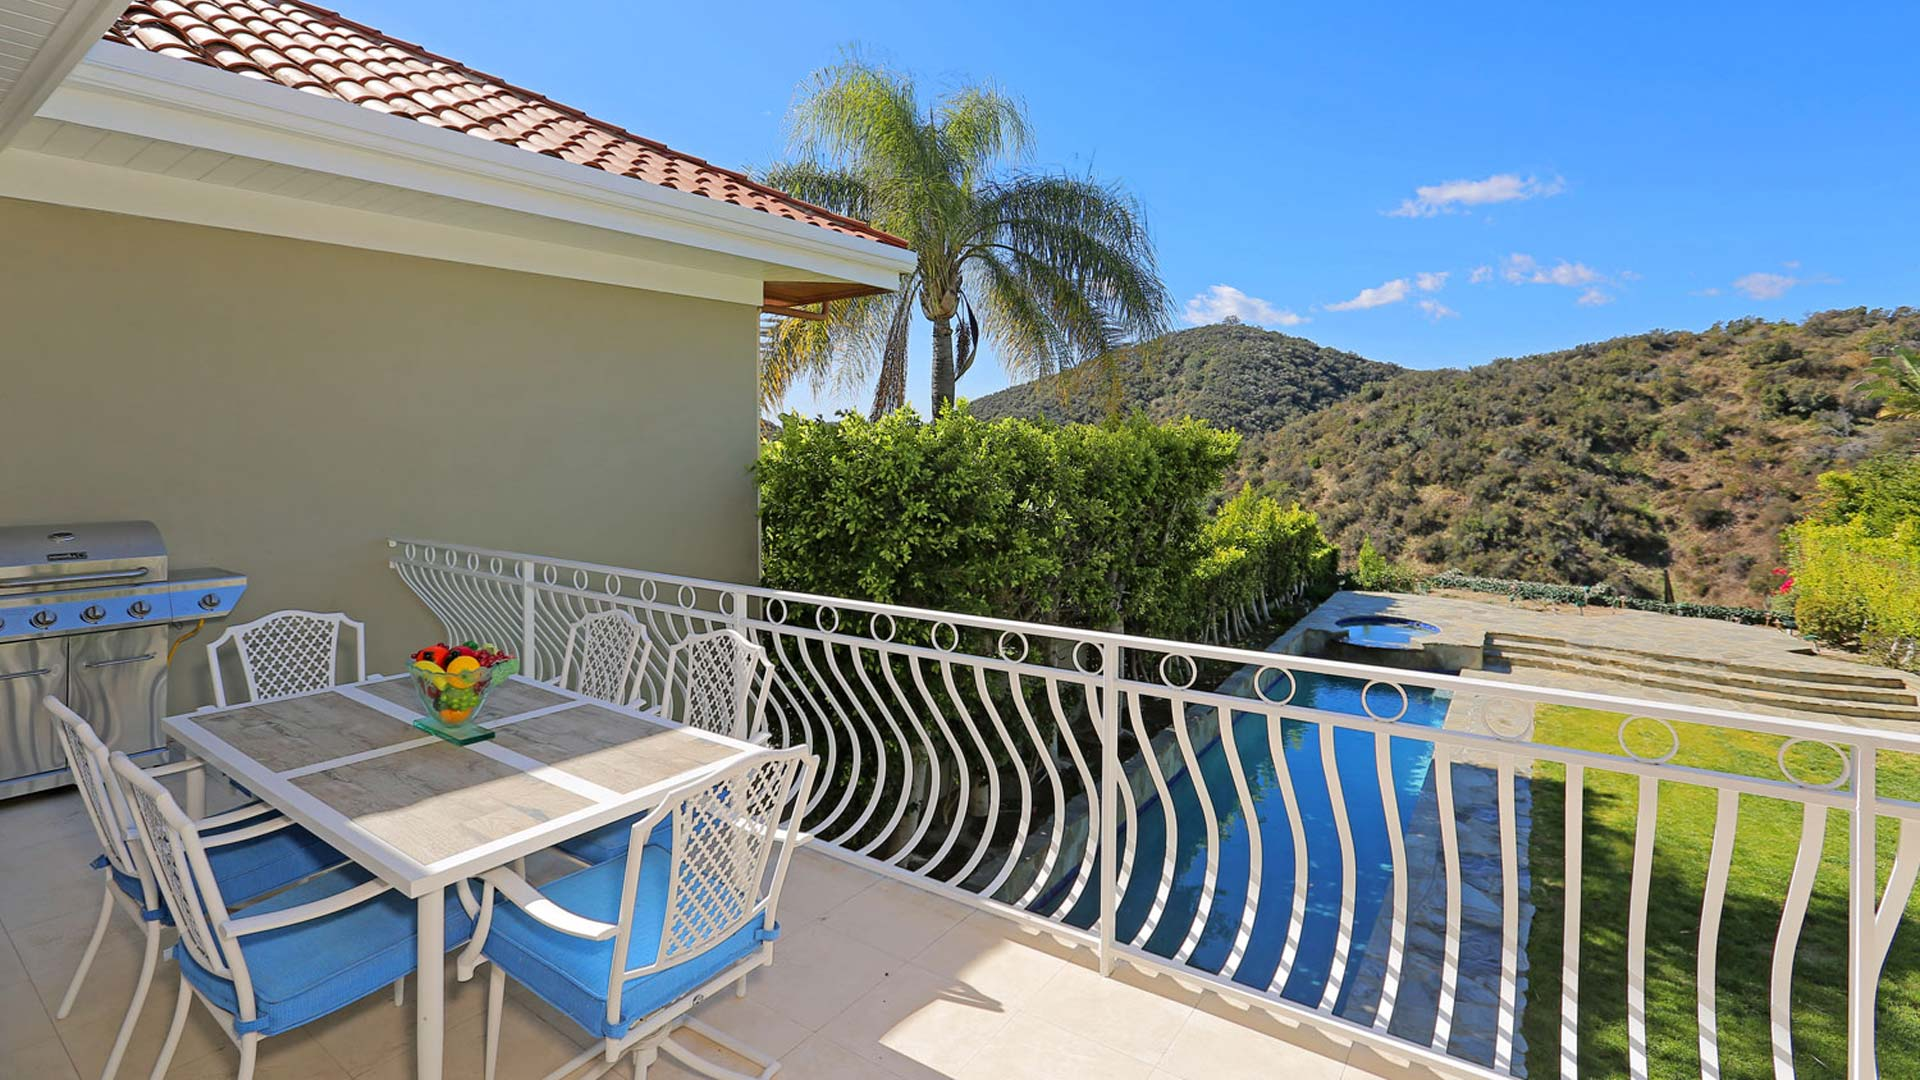 Brentwood, CA 90049 – 2107 Stoney Hill Road – $2,695,000